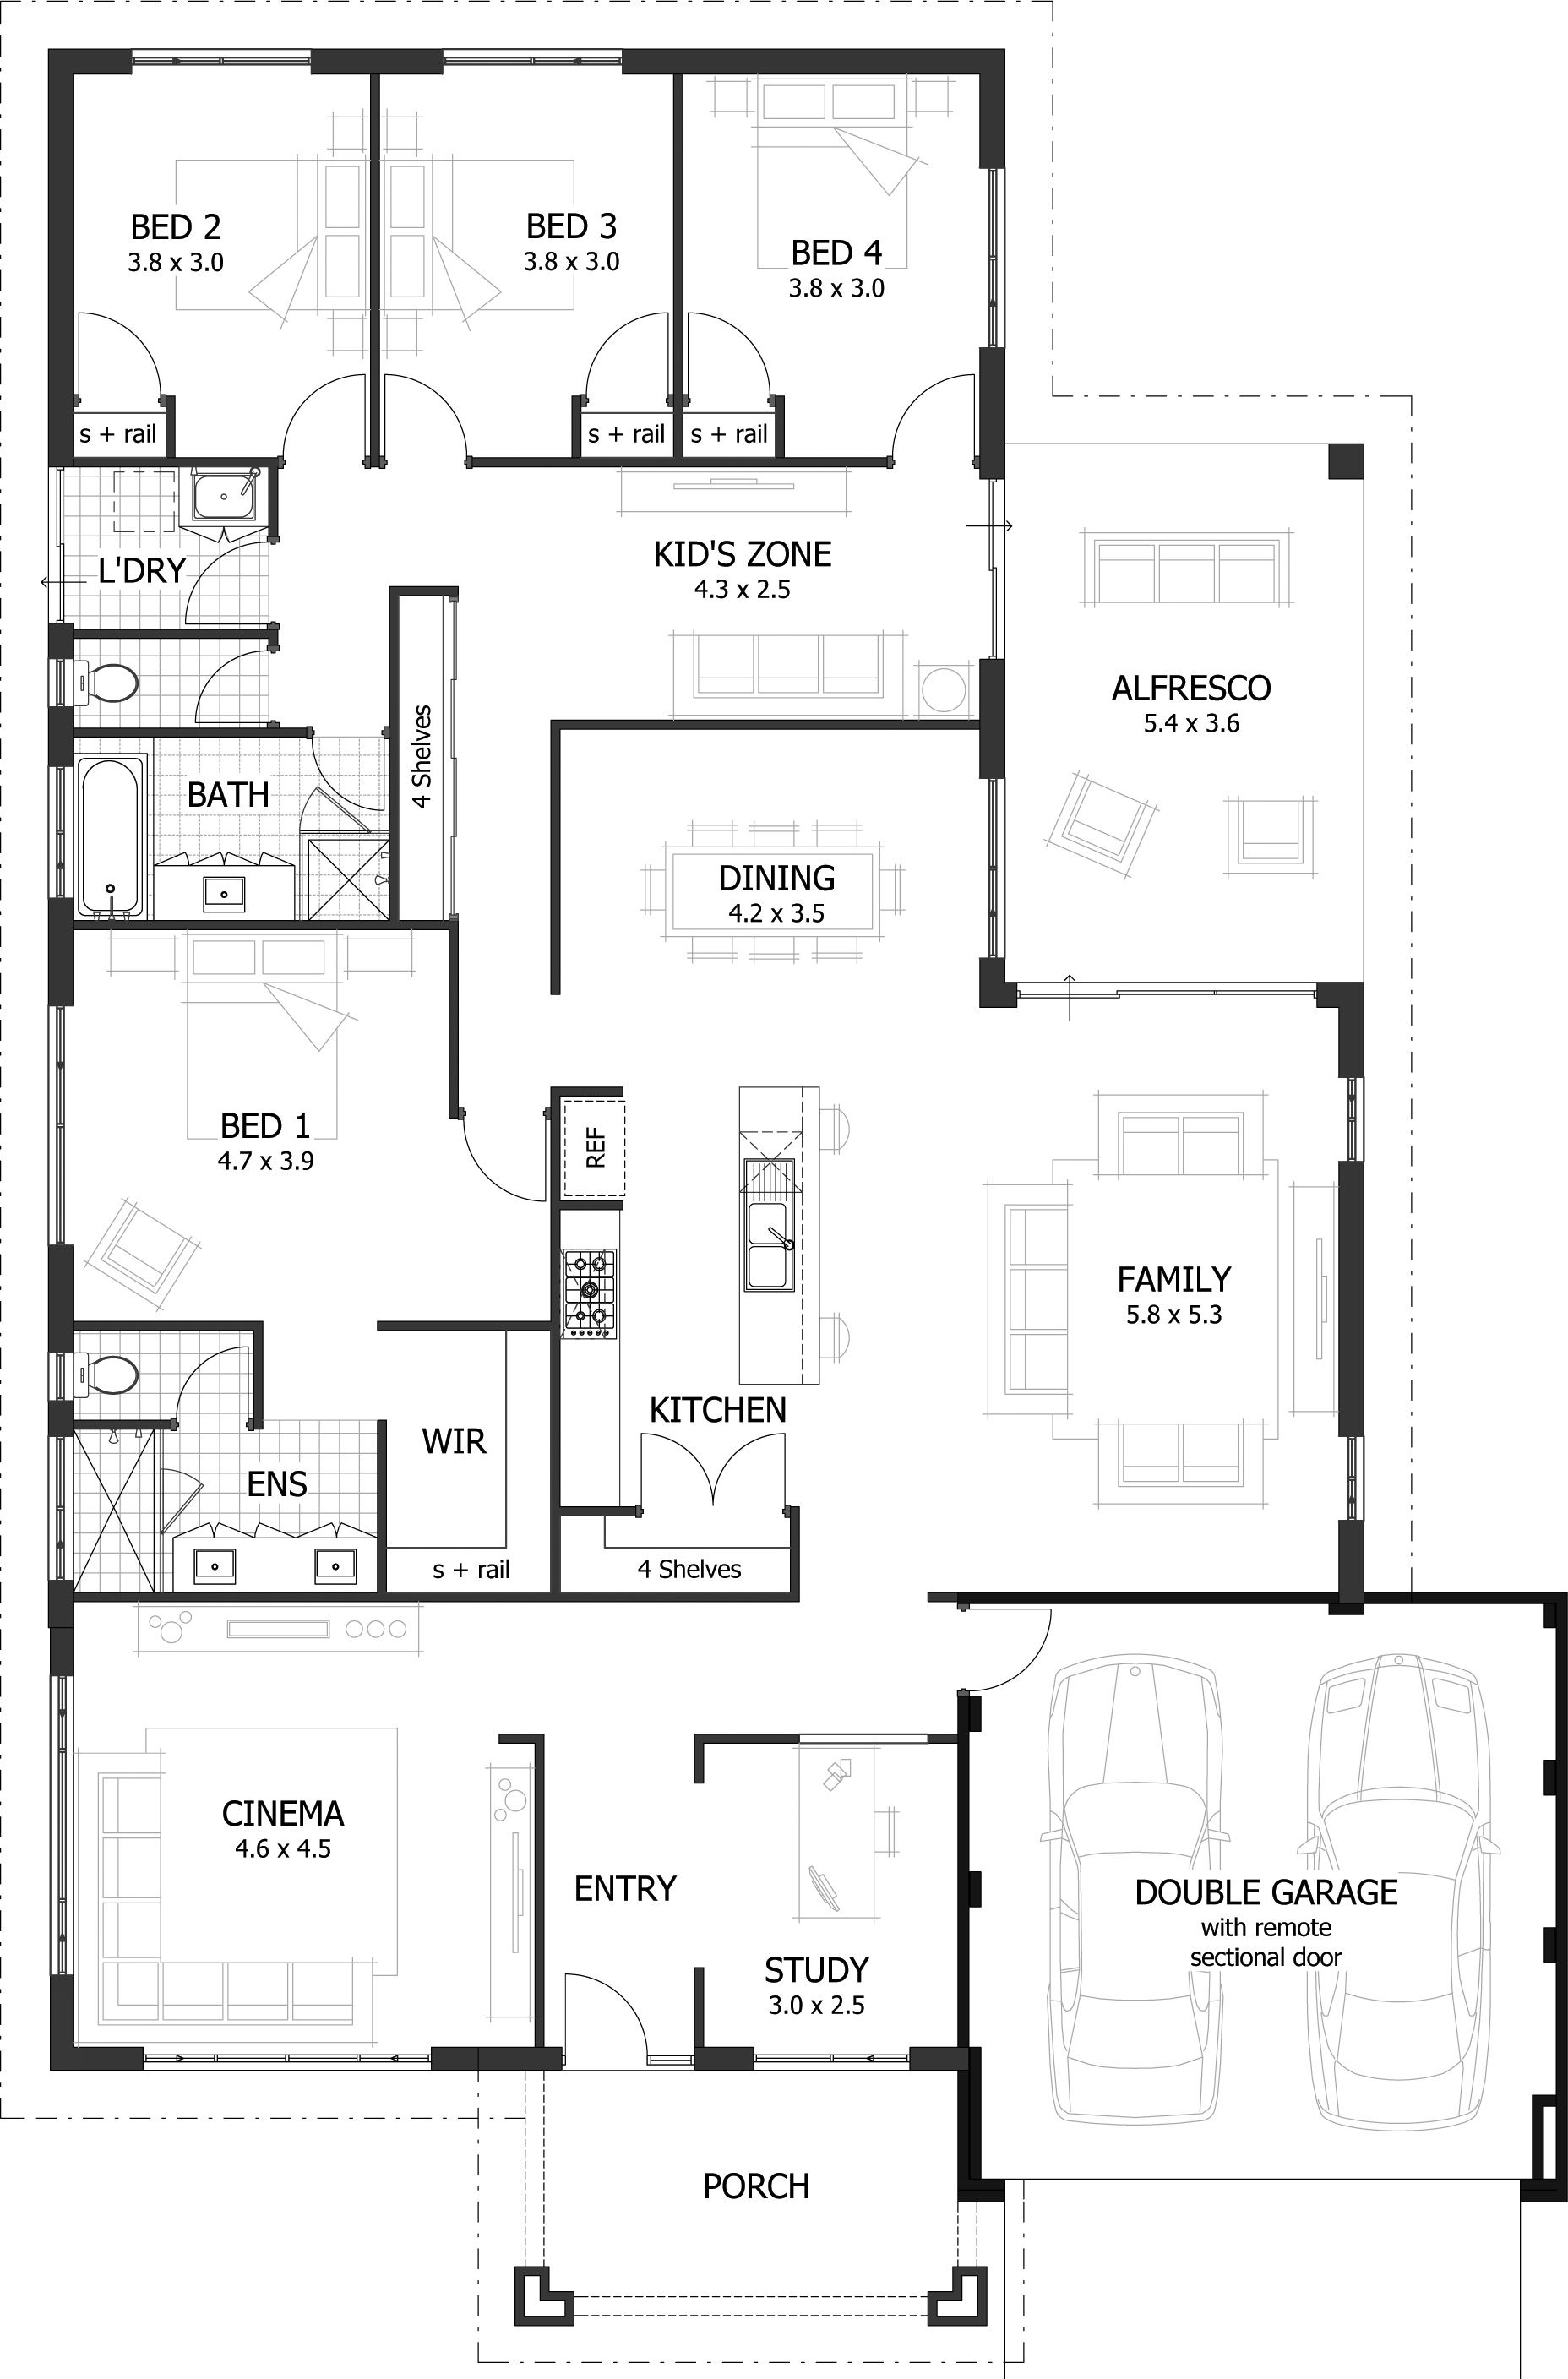 Merveilleux 4 Bedroom House Plans U0026 Home Designs | Celebration Homes